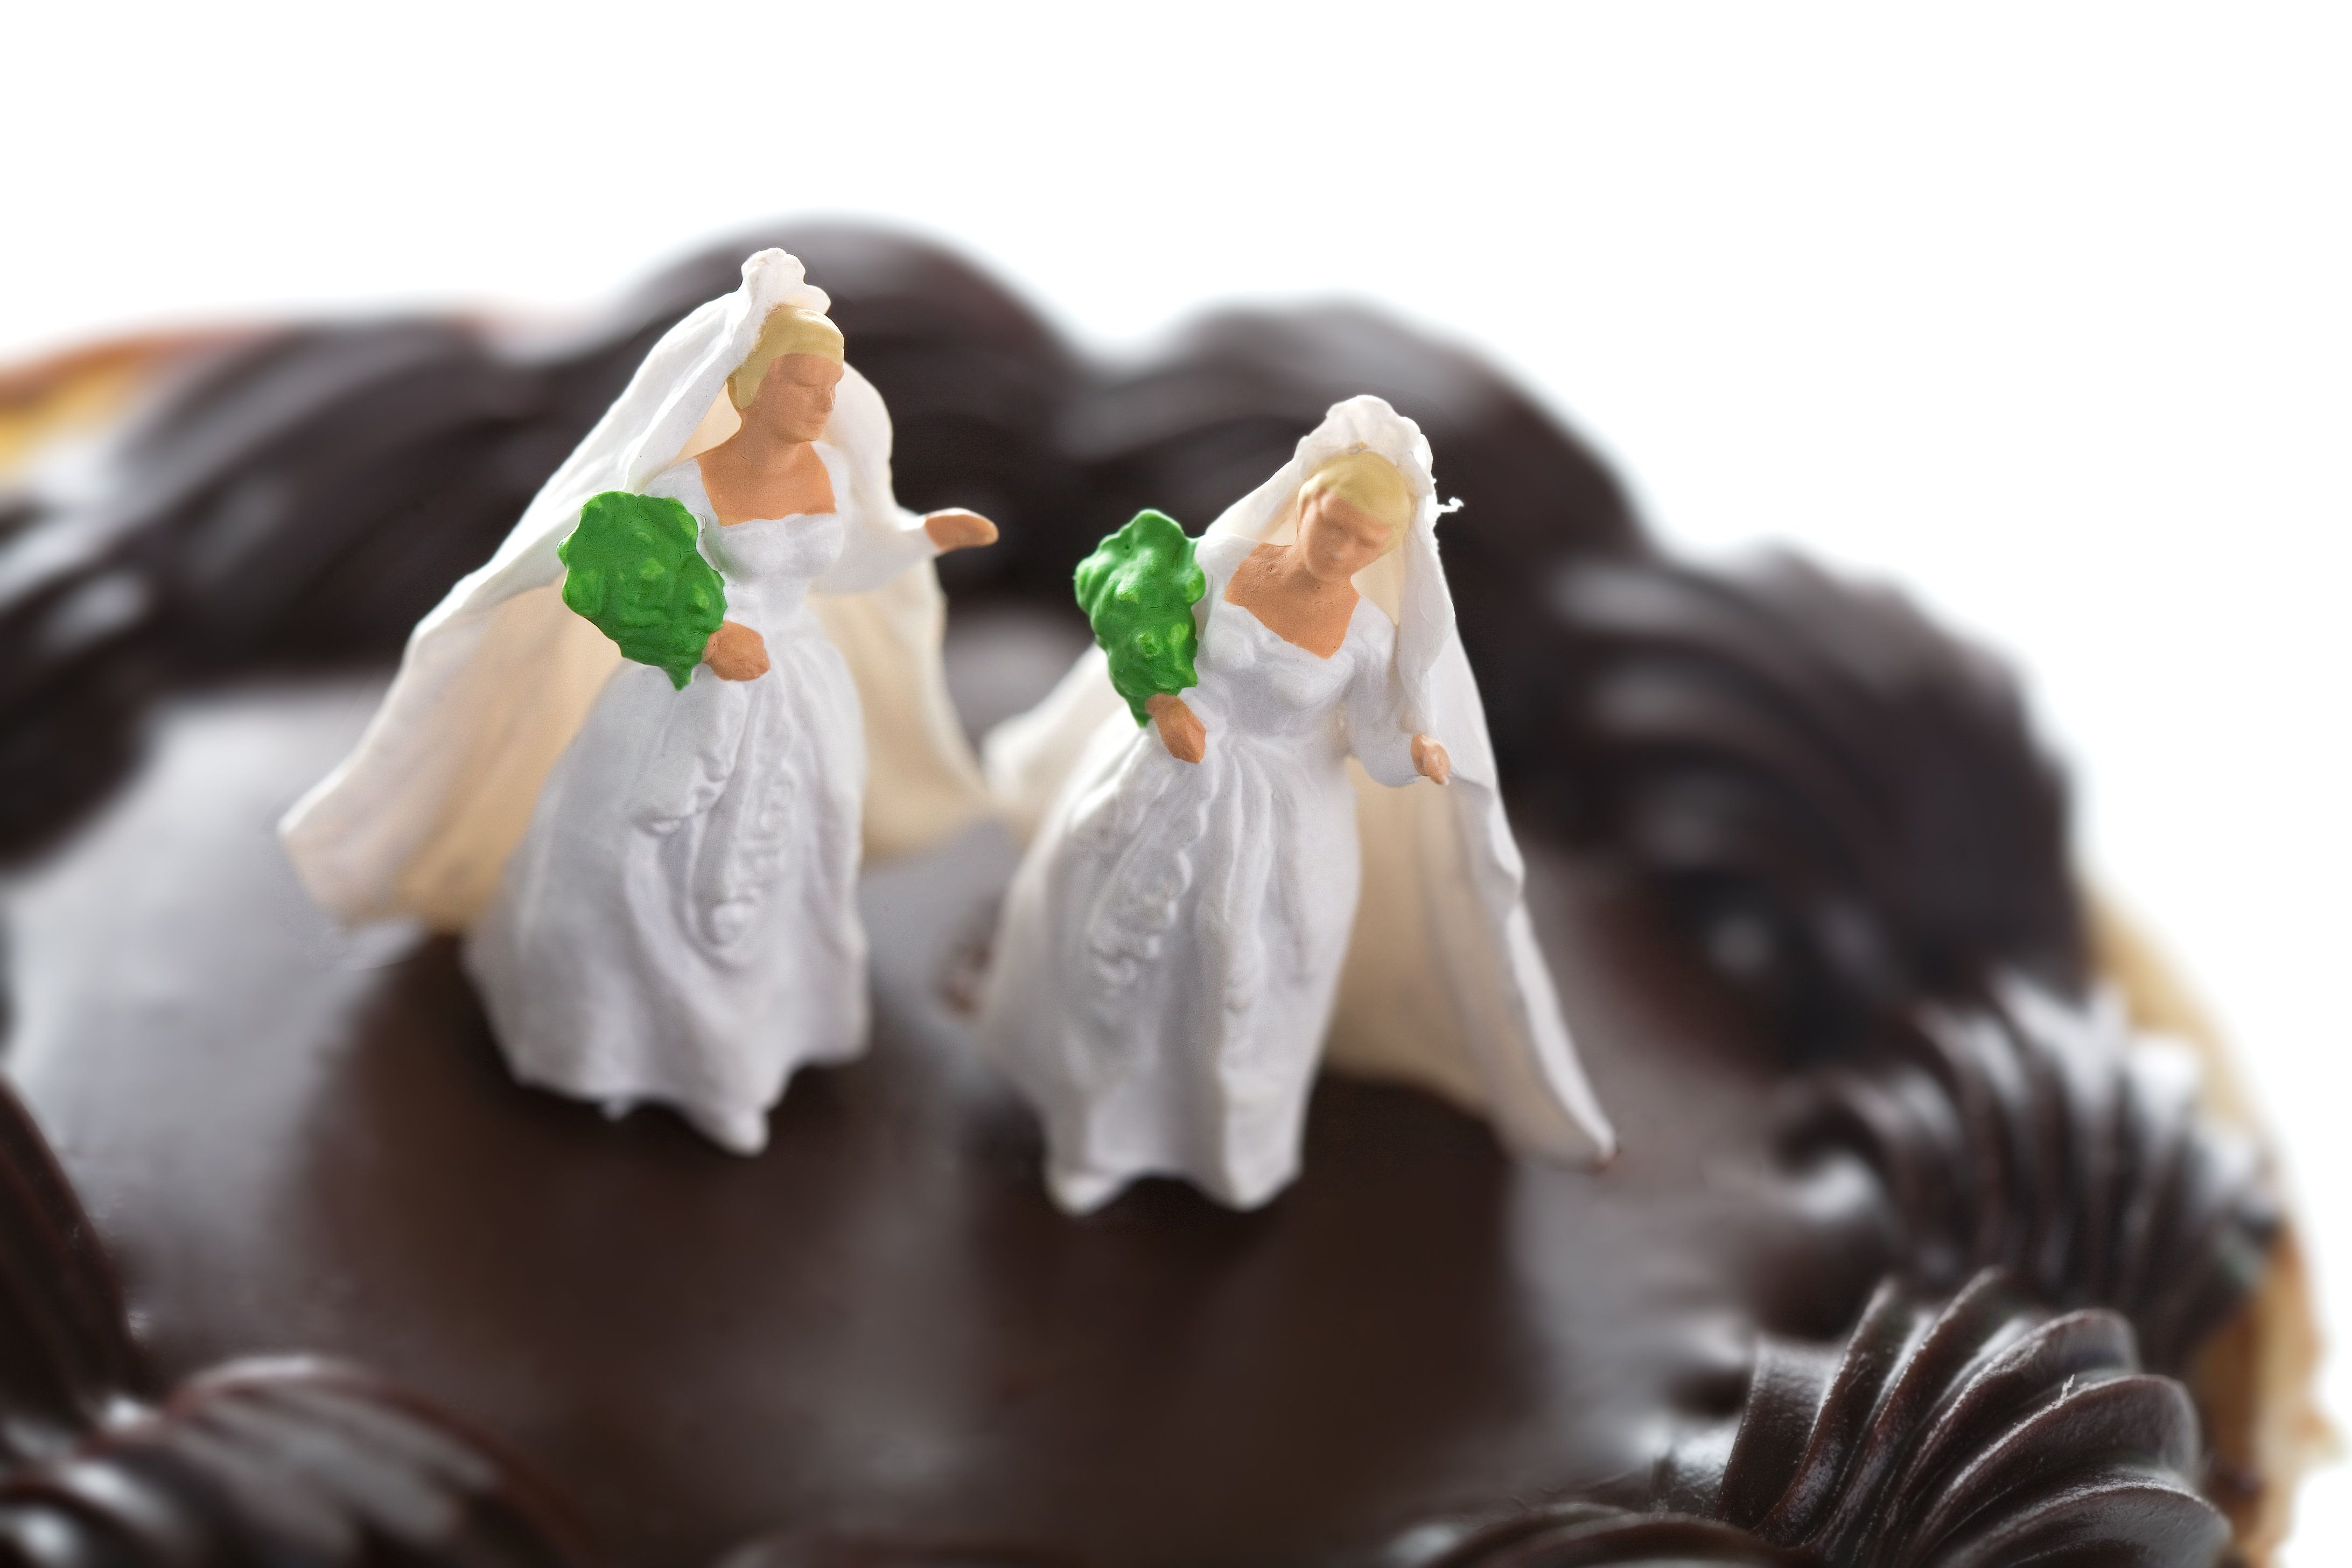 The bakery case is one of many disputes nationwide since the Supreme Court's 2015 decision legalizing same-sex marriage